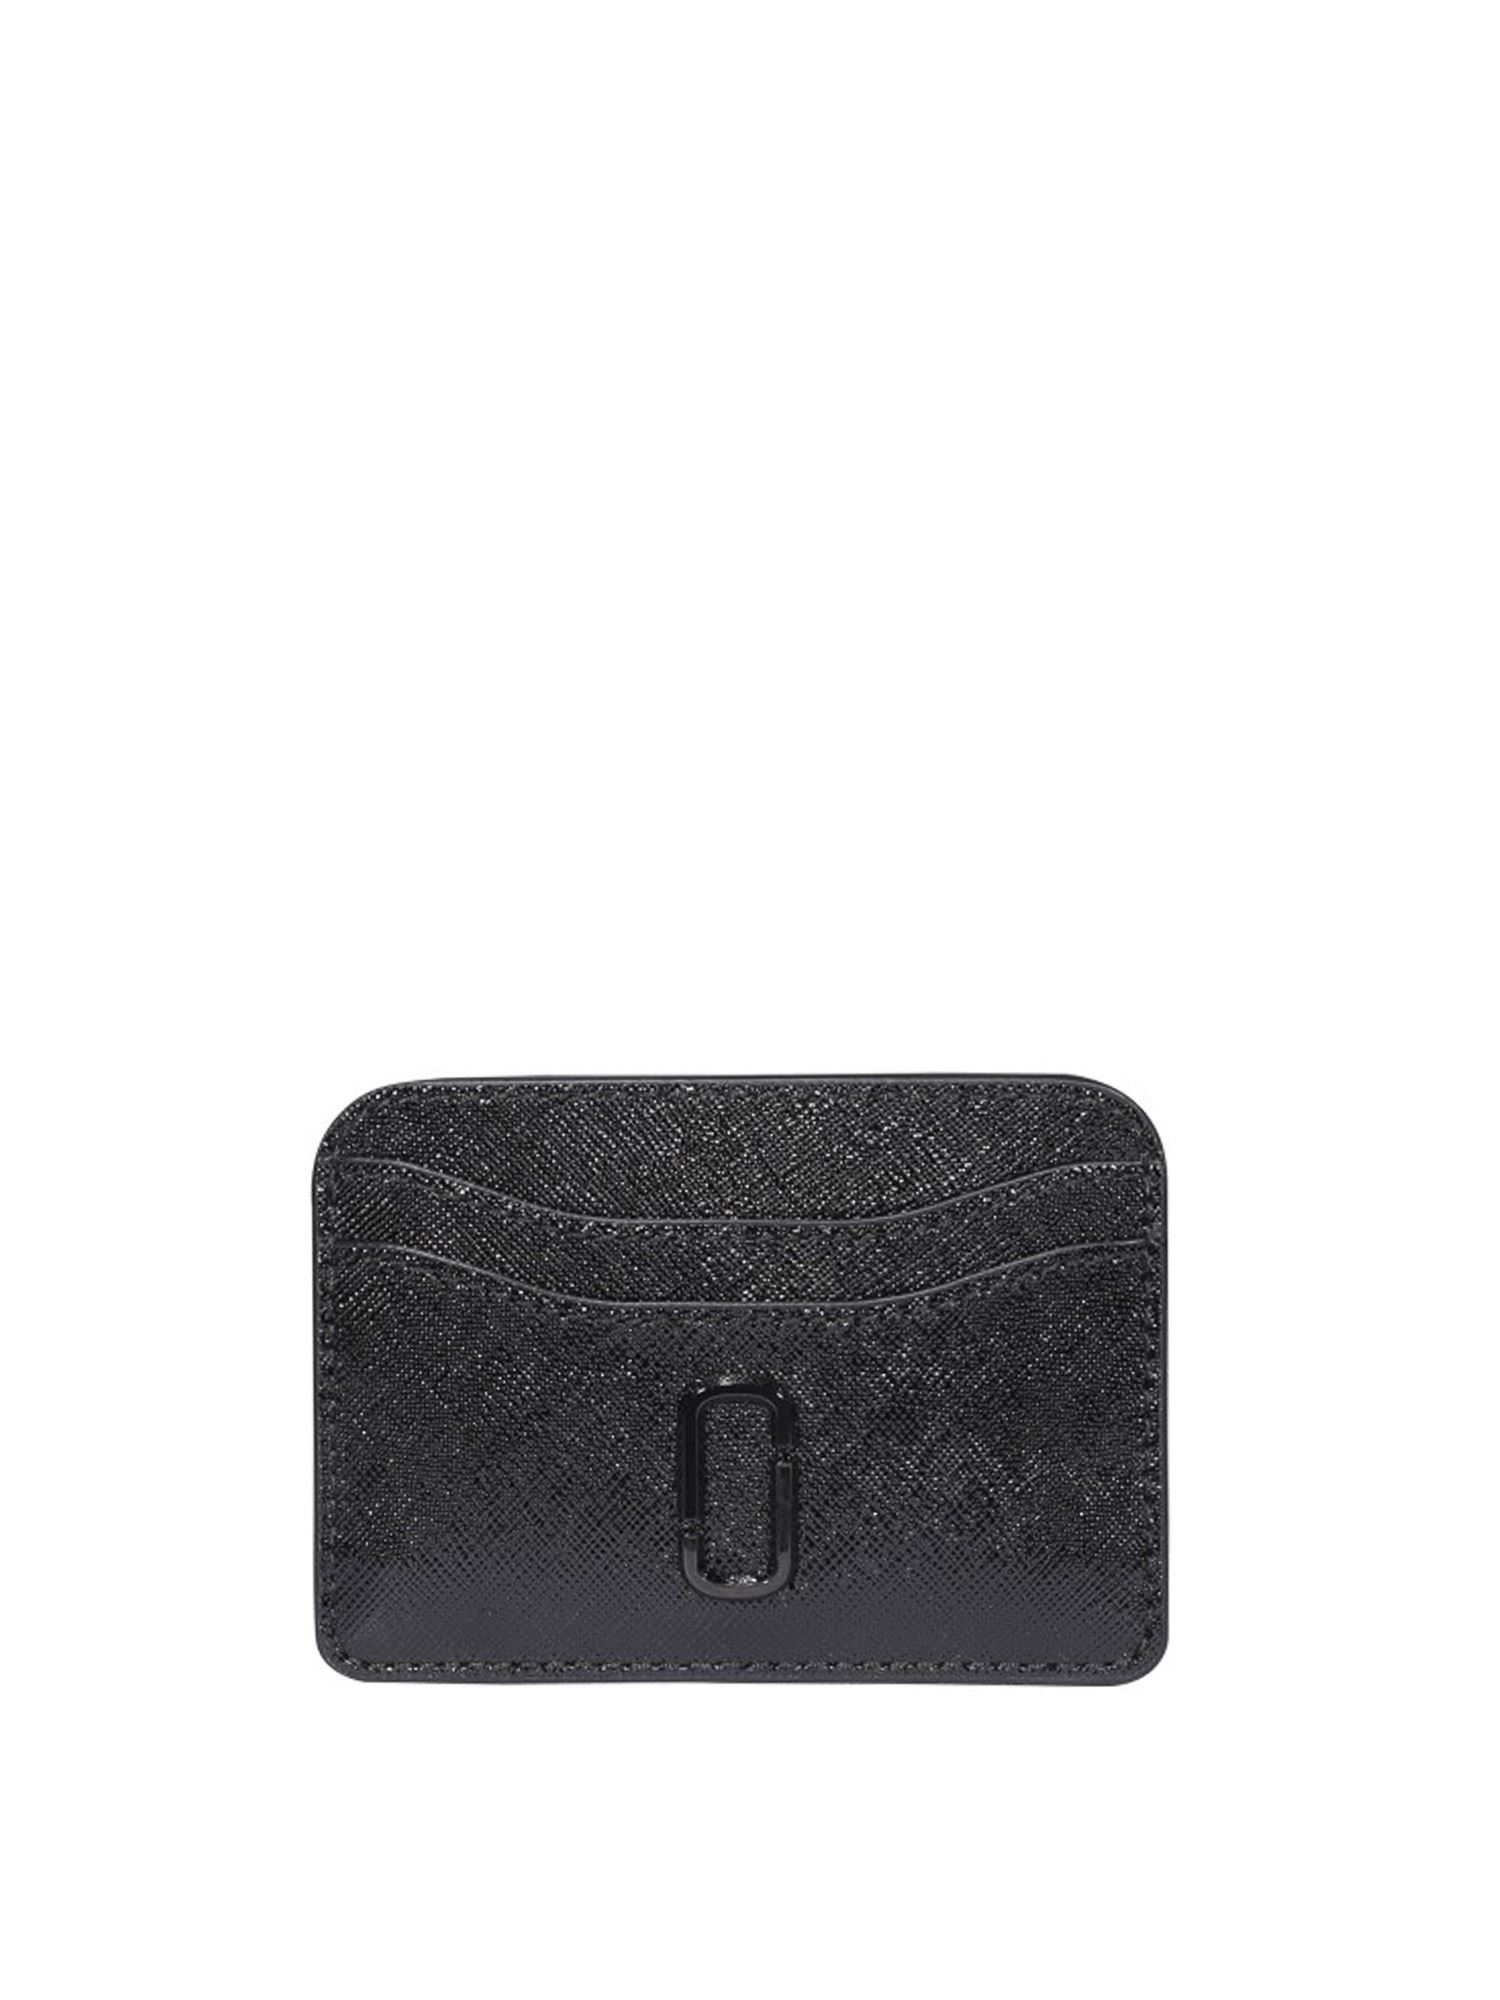 Marc Jacobs THE SNAPSHOT CARD HOLDER IN BLACK